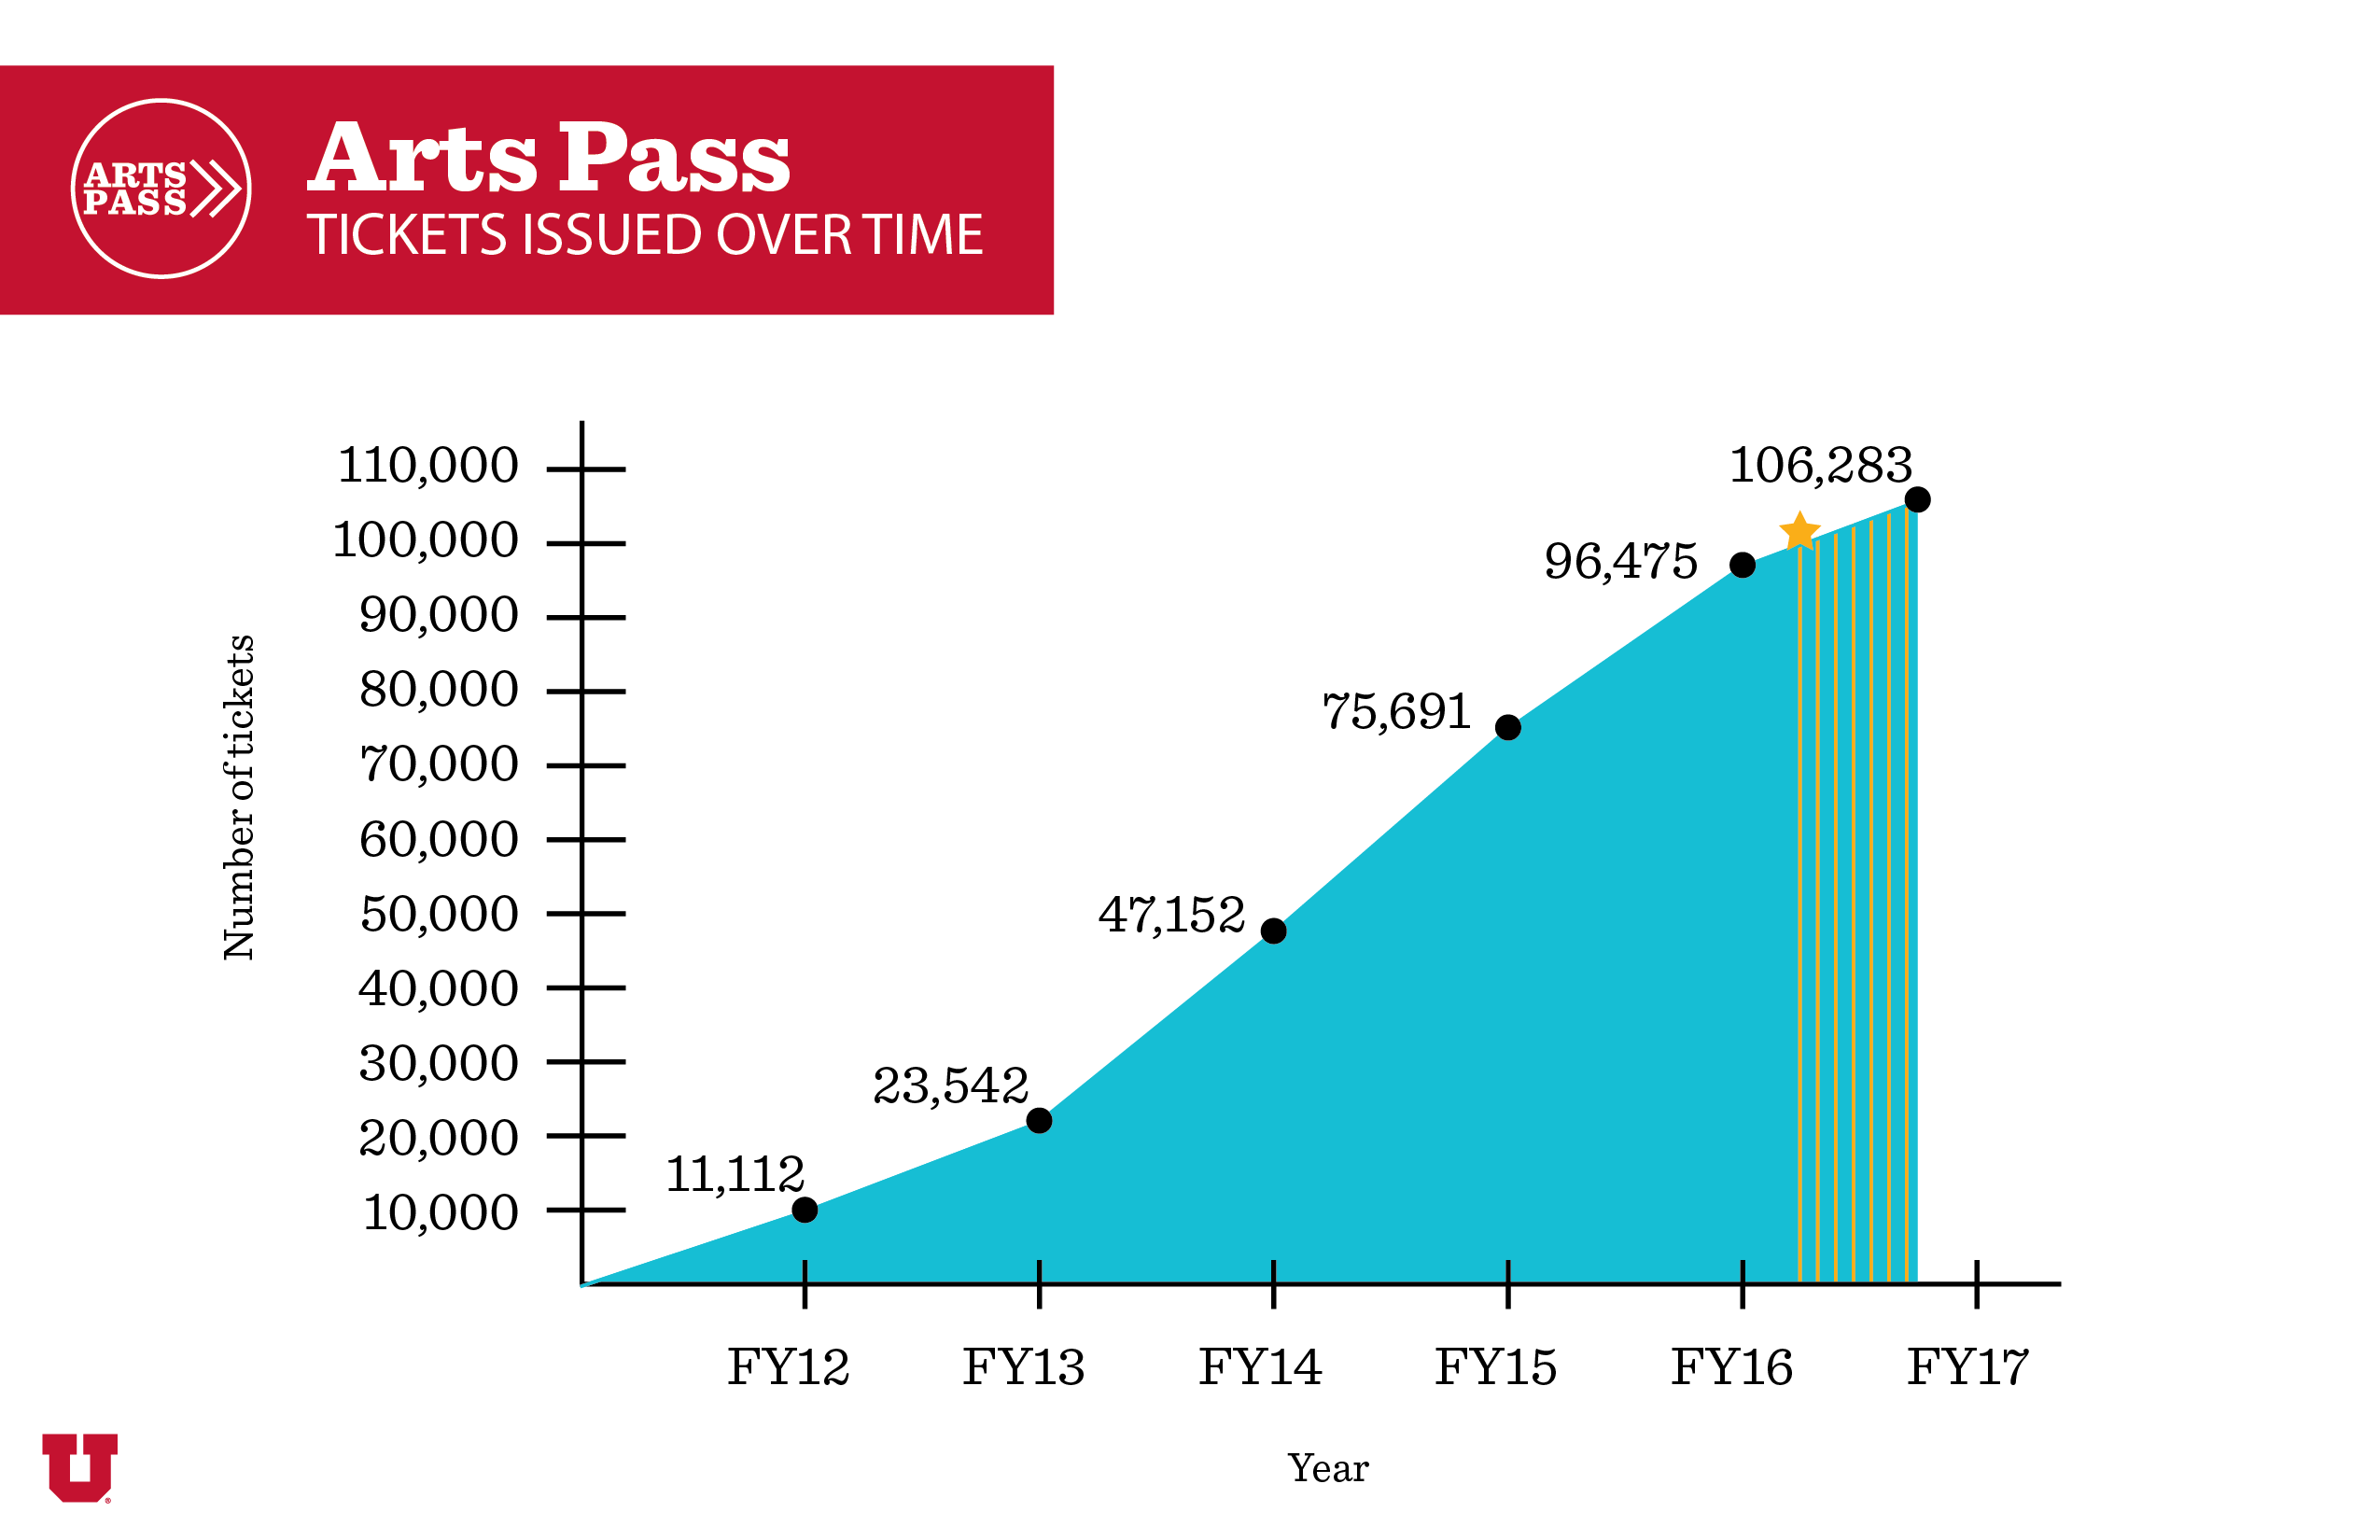 Arts Pass FY17 March v2 01